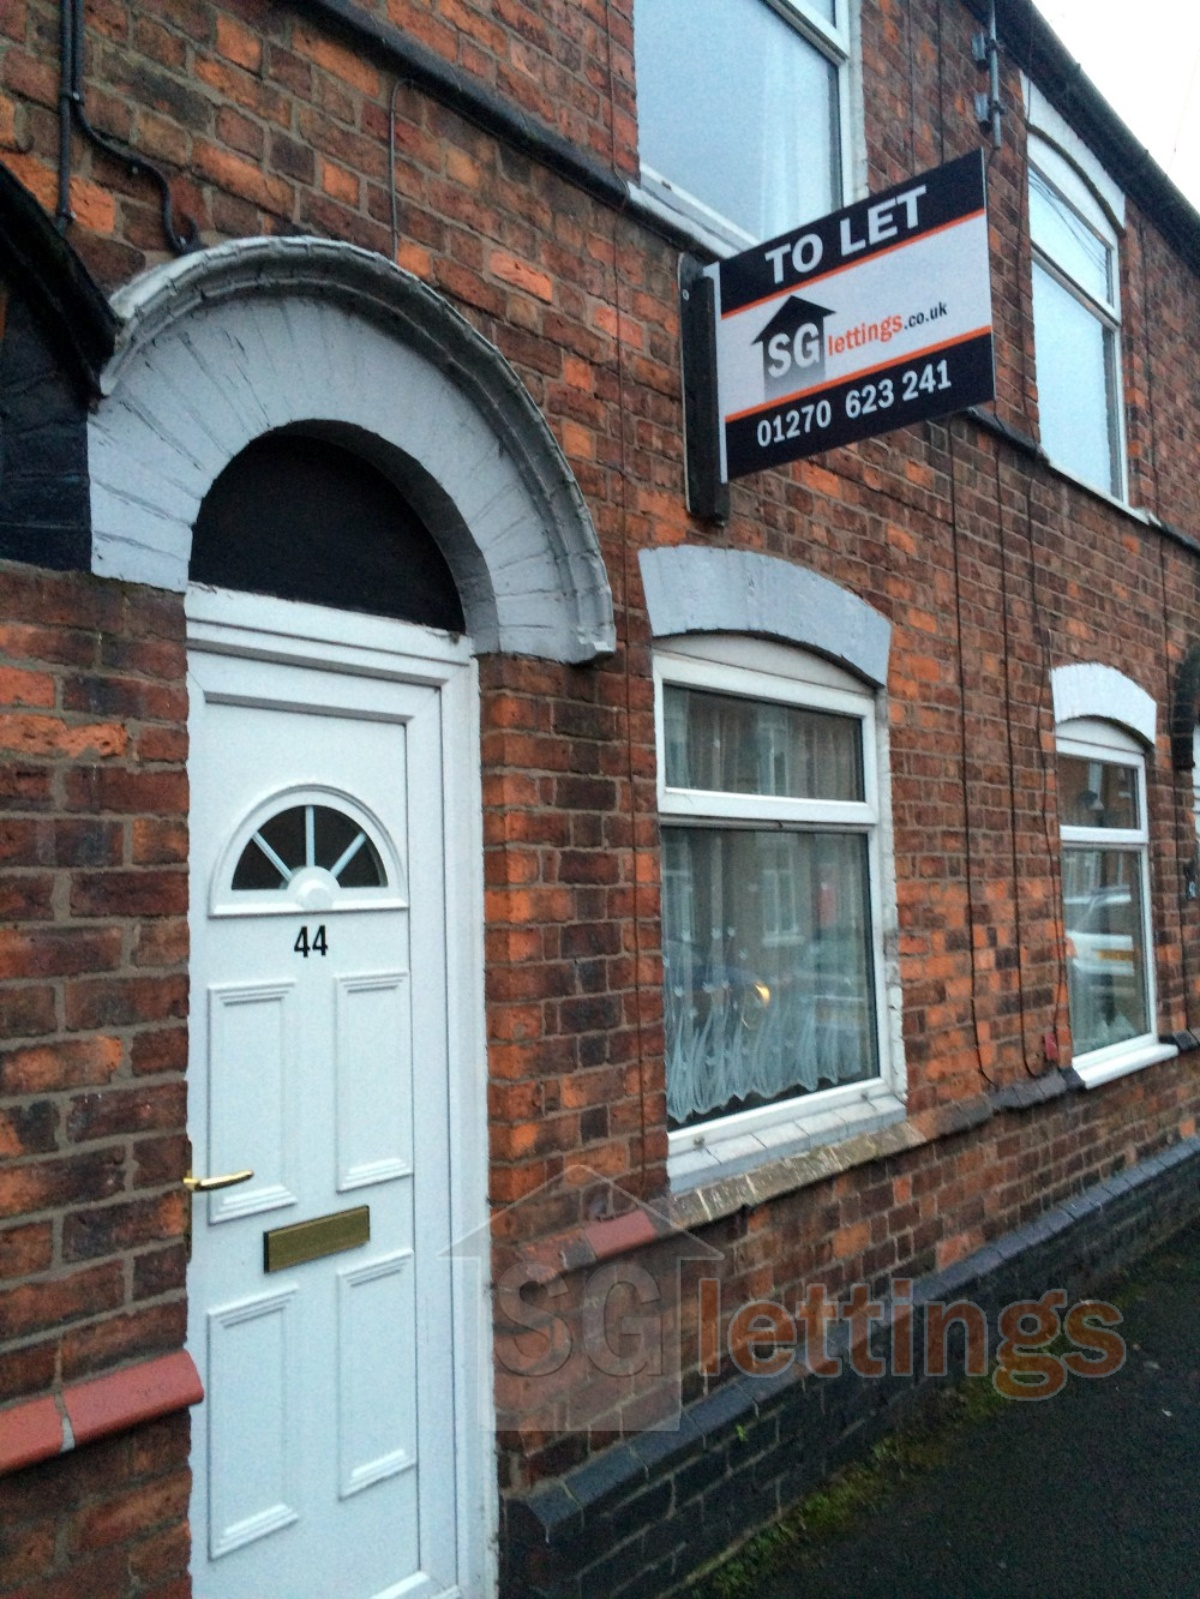 2 Bed Arnold Street House- Arnold Street, Nantwich